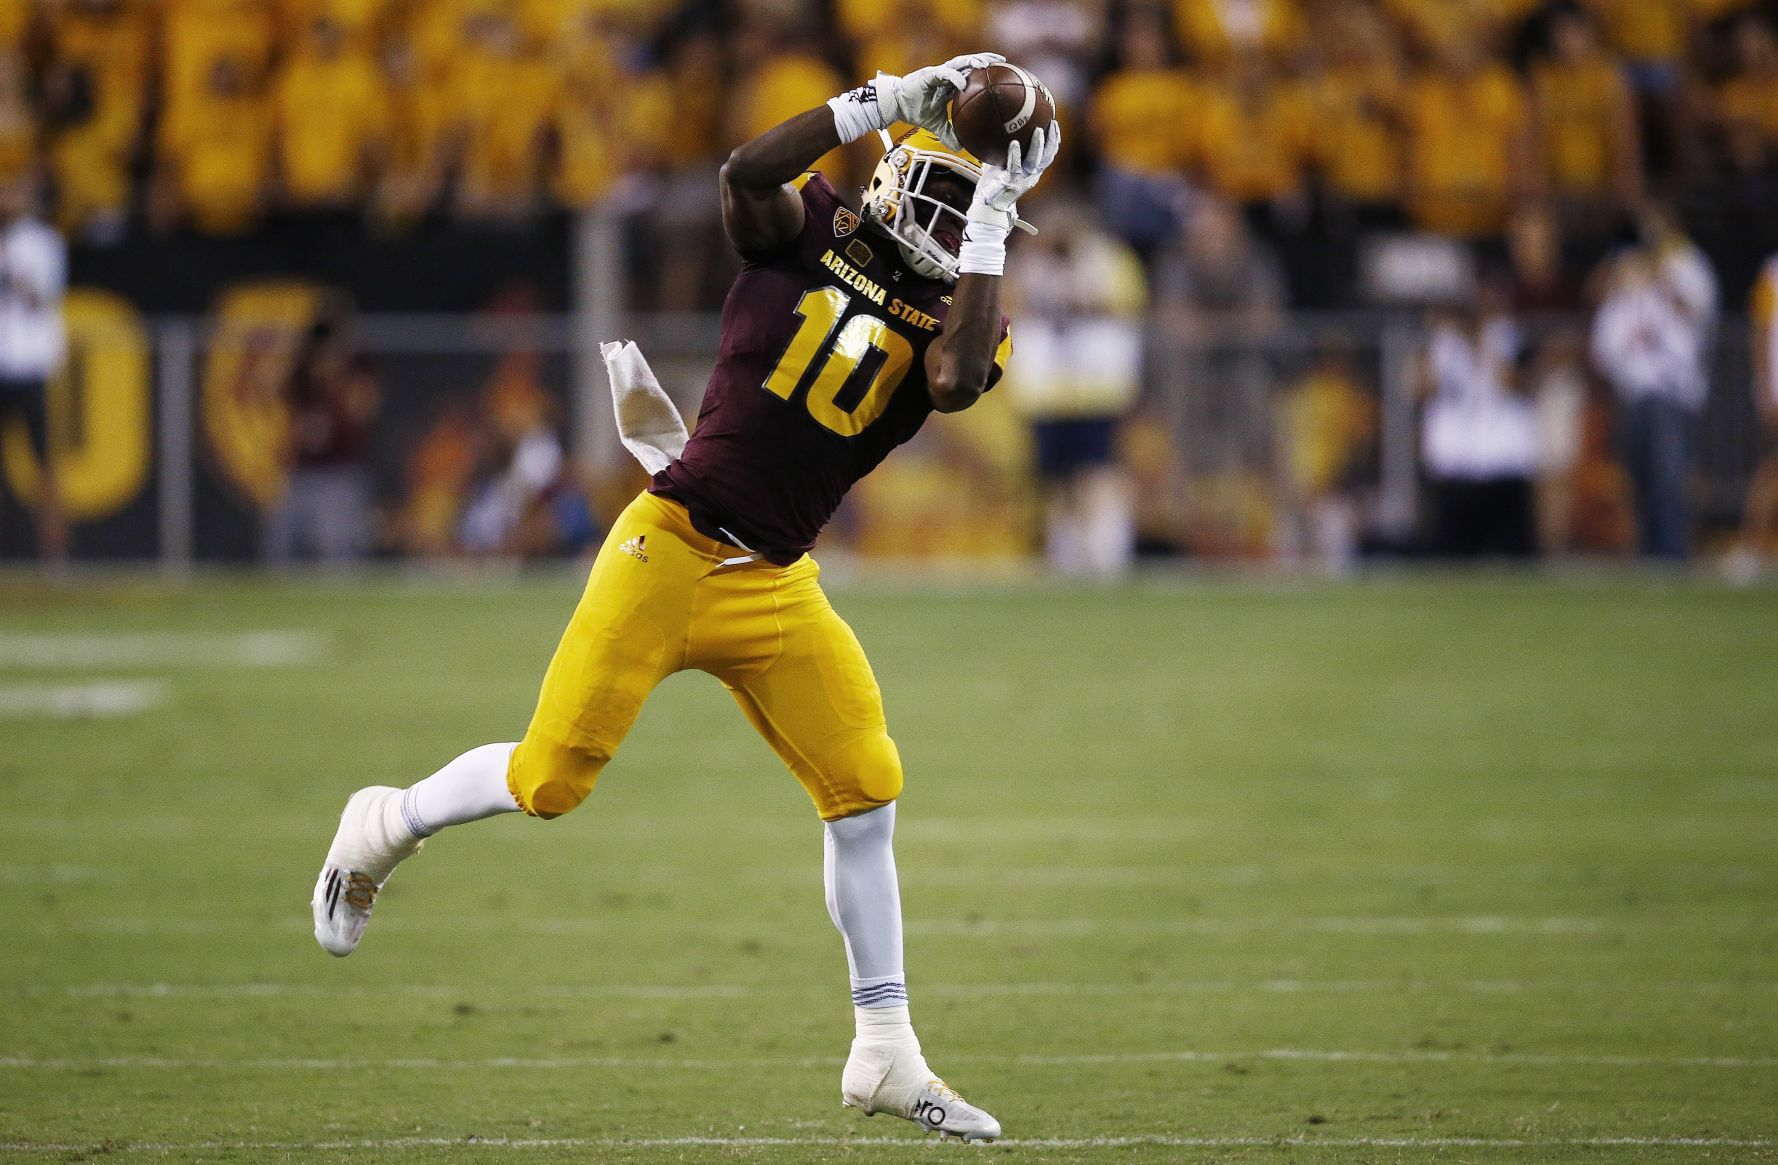 Oregon Ducks vs. Arizona State Sun Devils, game by the numbers